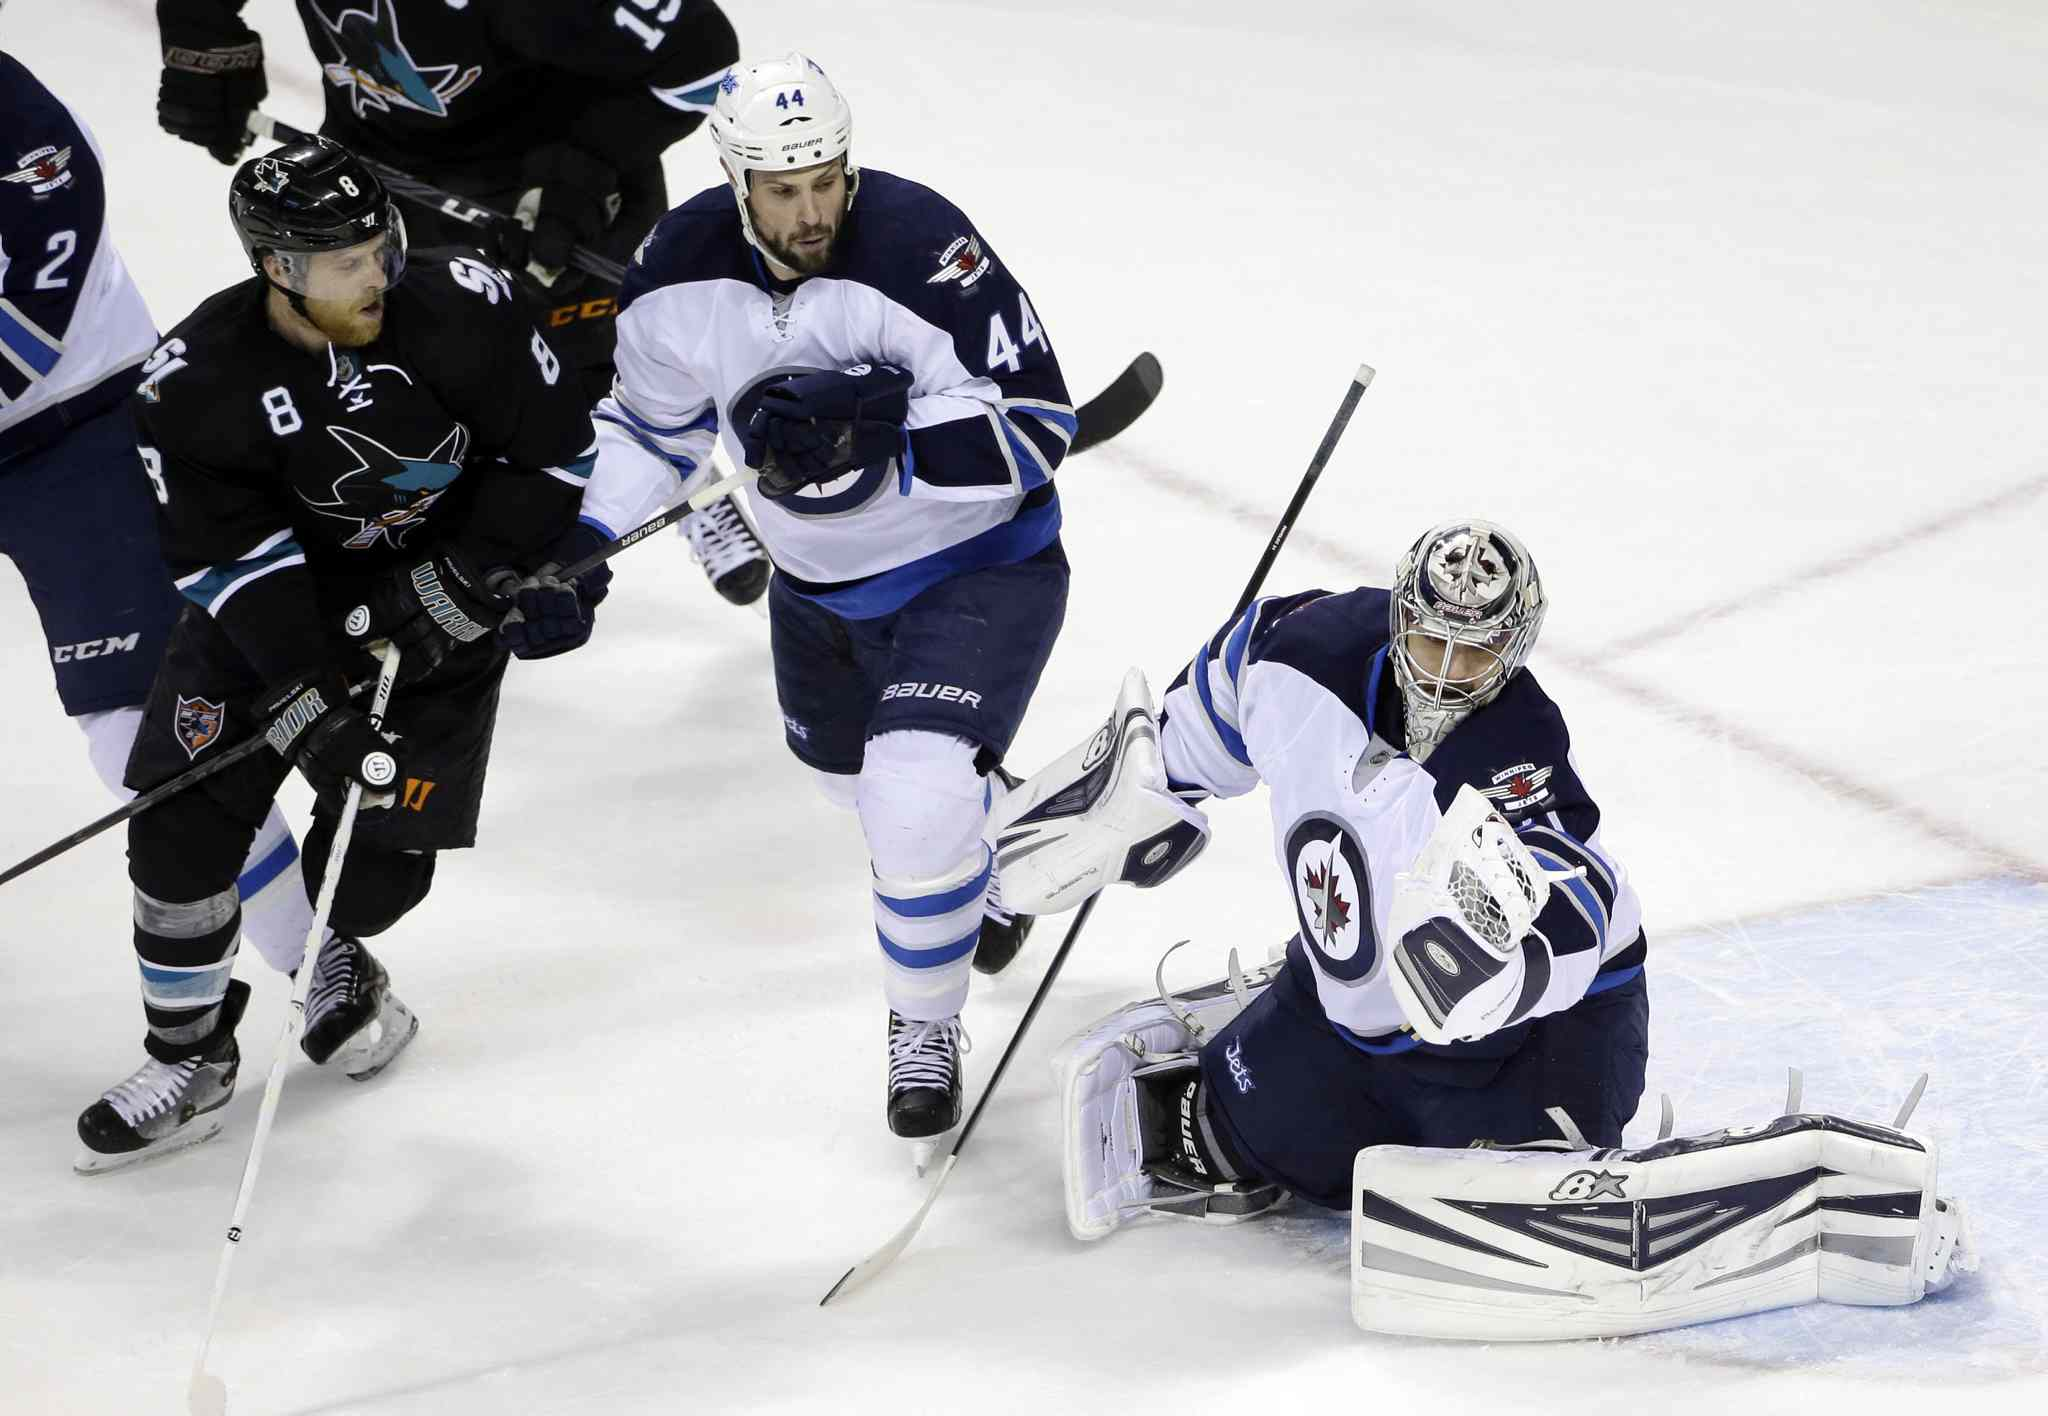 Winnipeg Jets' goalie Ondrej Pavelec, right, stops a shot next to teammate Zach Bogosian (44) and San Jose Sharks' Joe Pavelski (8) during the first period of Thursday's game.